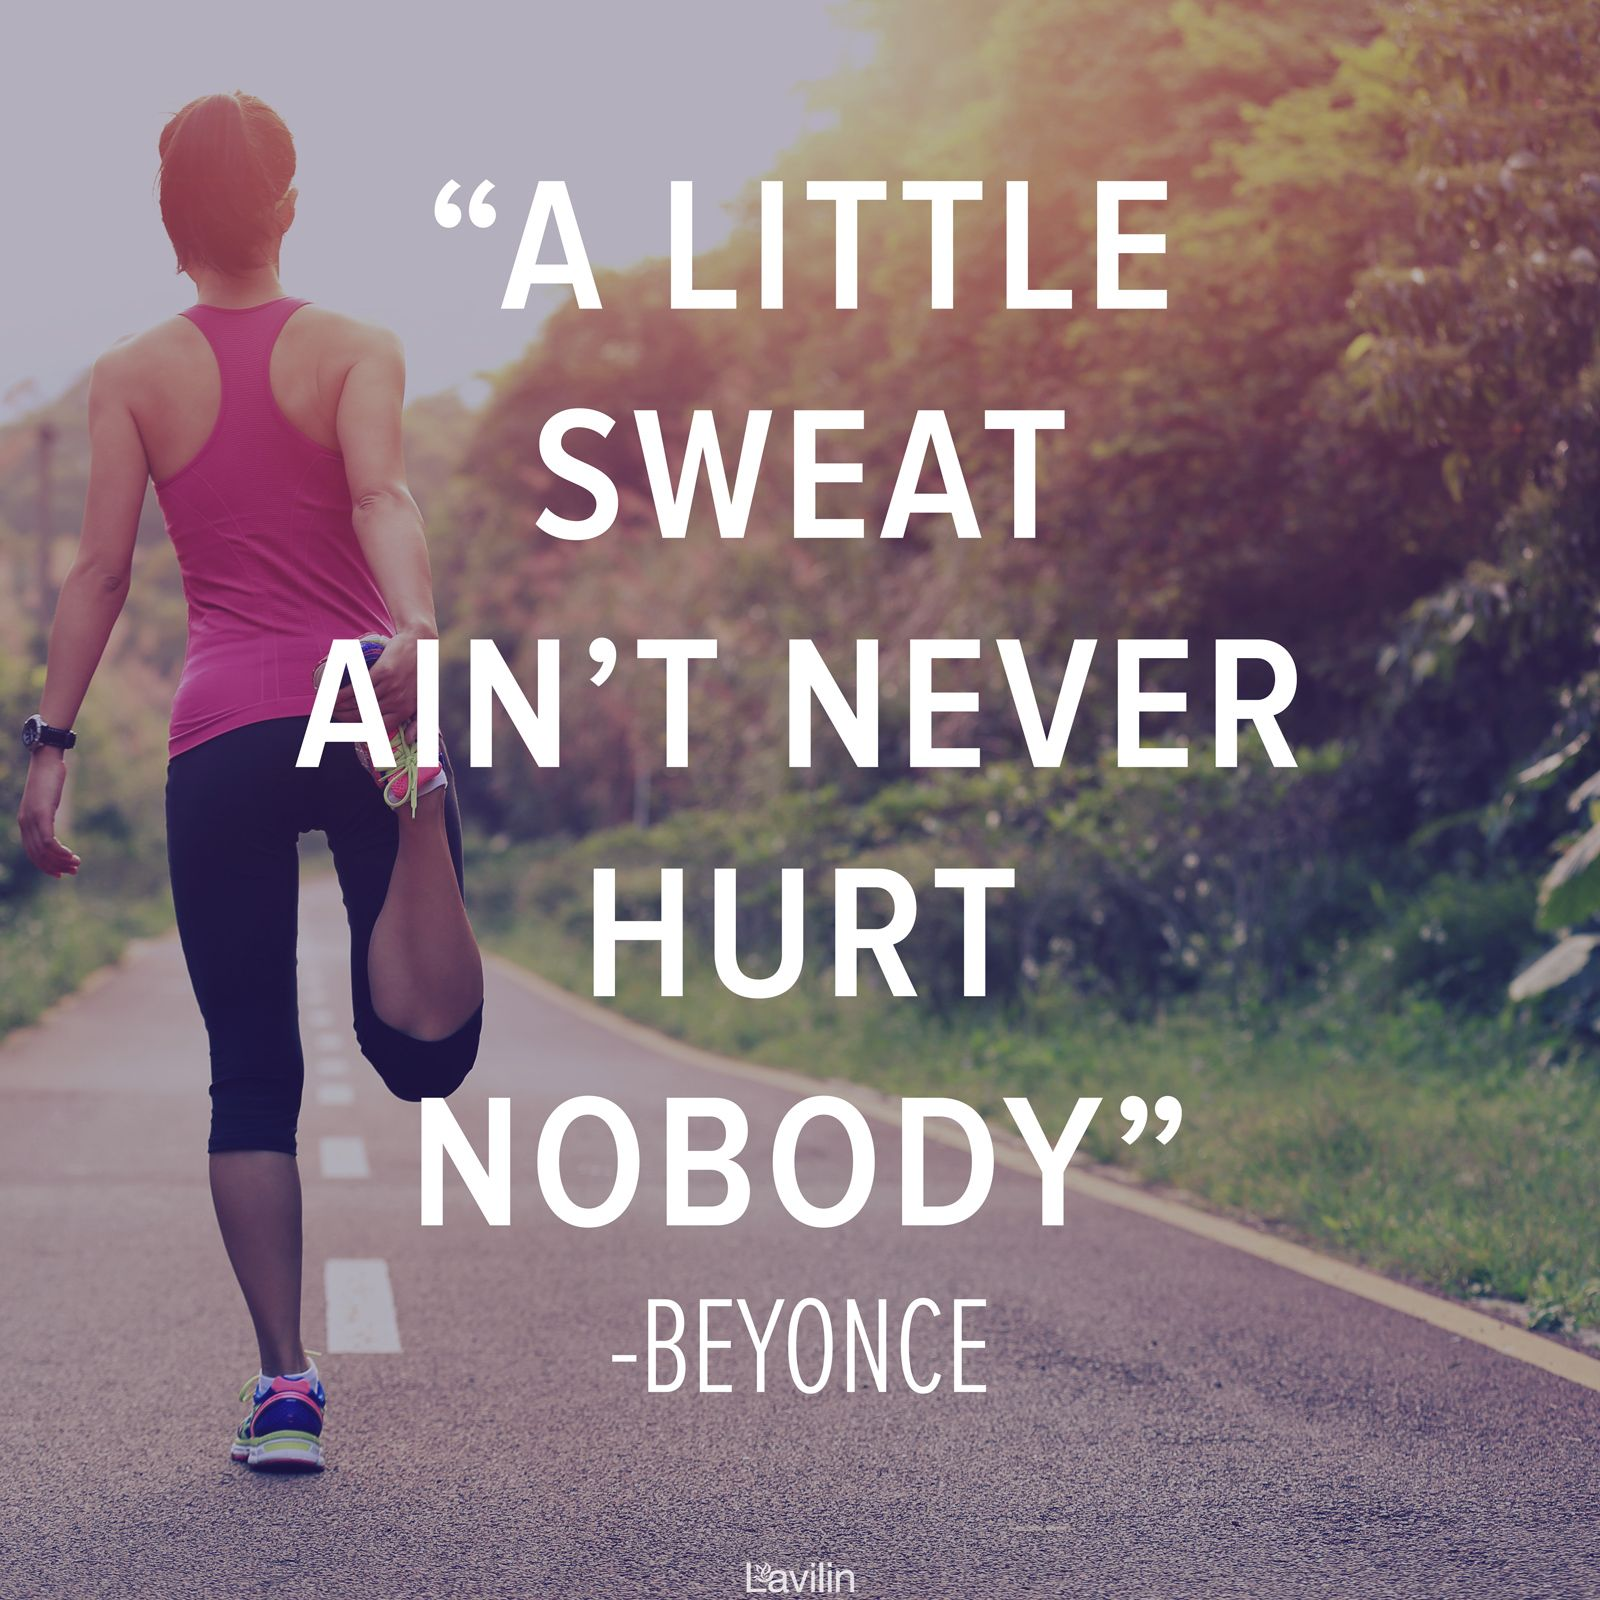 """A little sweat ain't never hurt nobody."" - Beyonce 